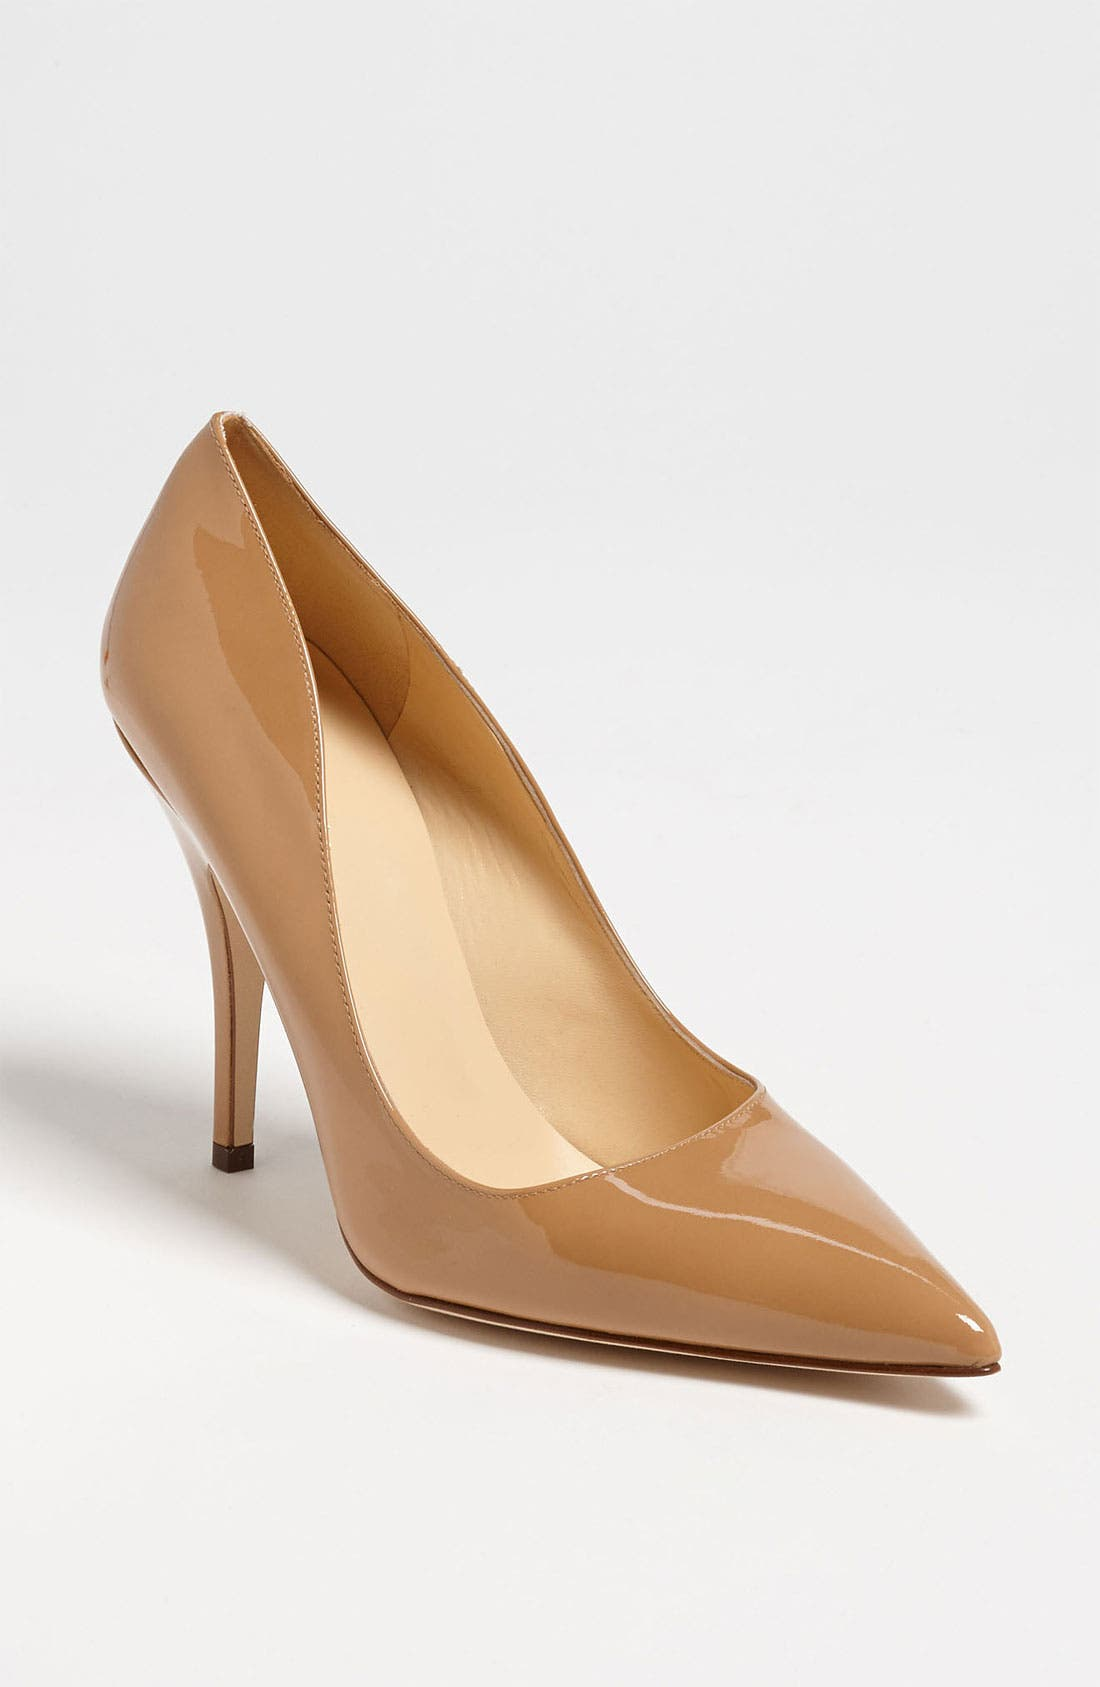 Alternate Image 1 Selected - kate spade new york 'licorice too' pump (Women)